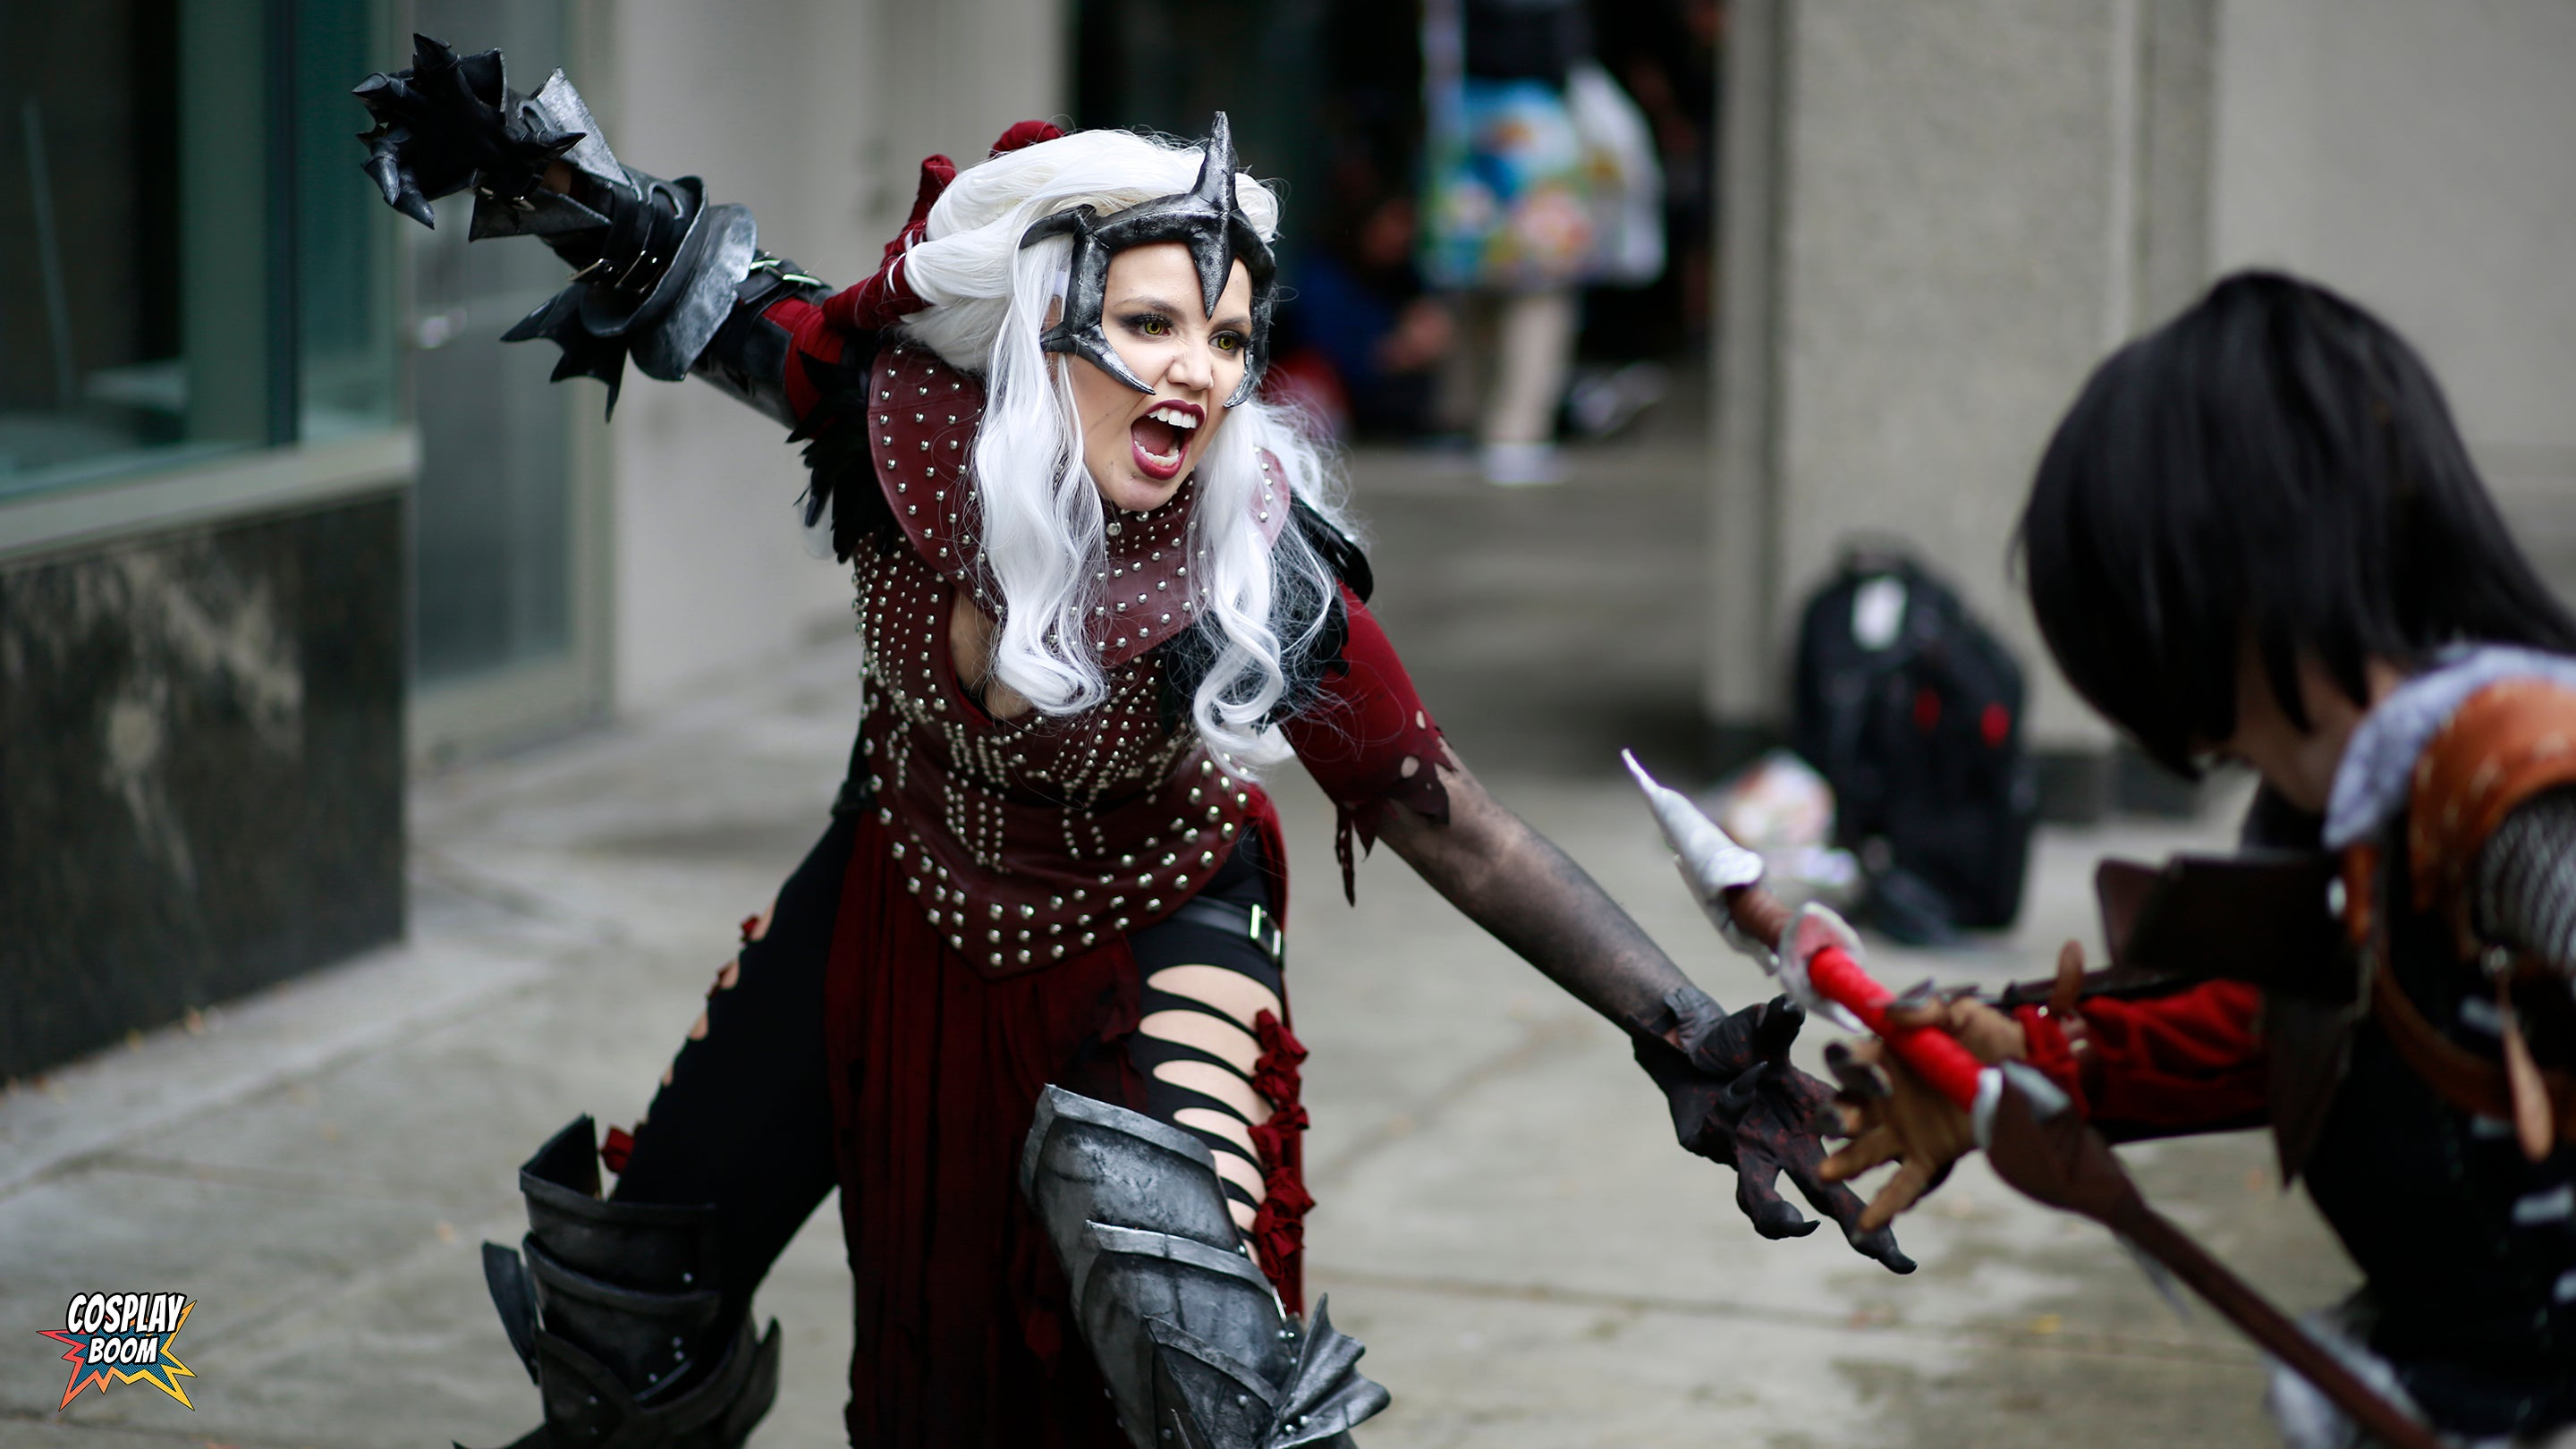 A Look Back at Some of 2014's Coolest Cosplay